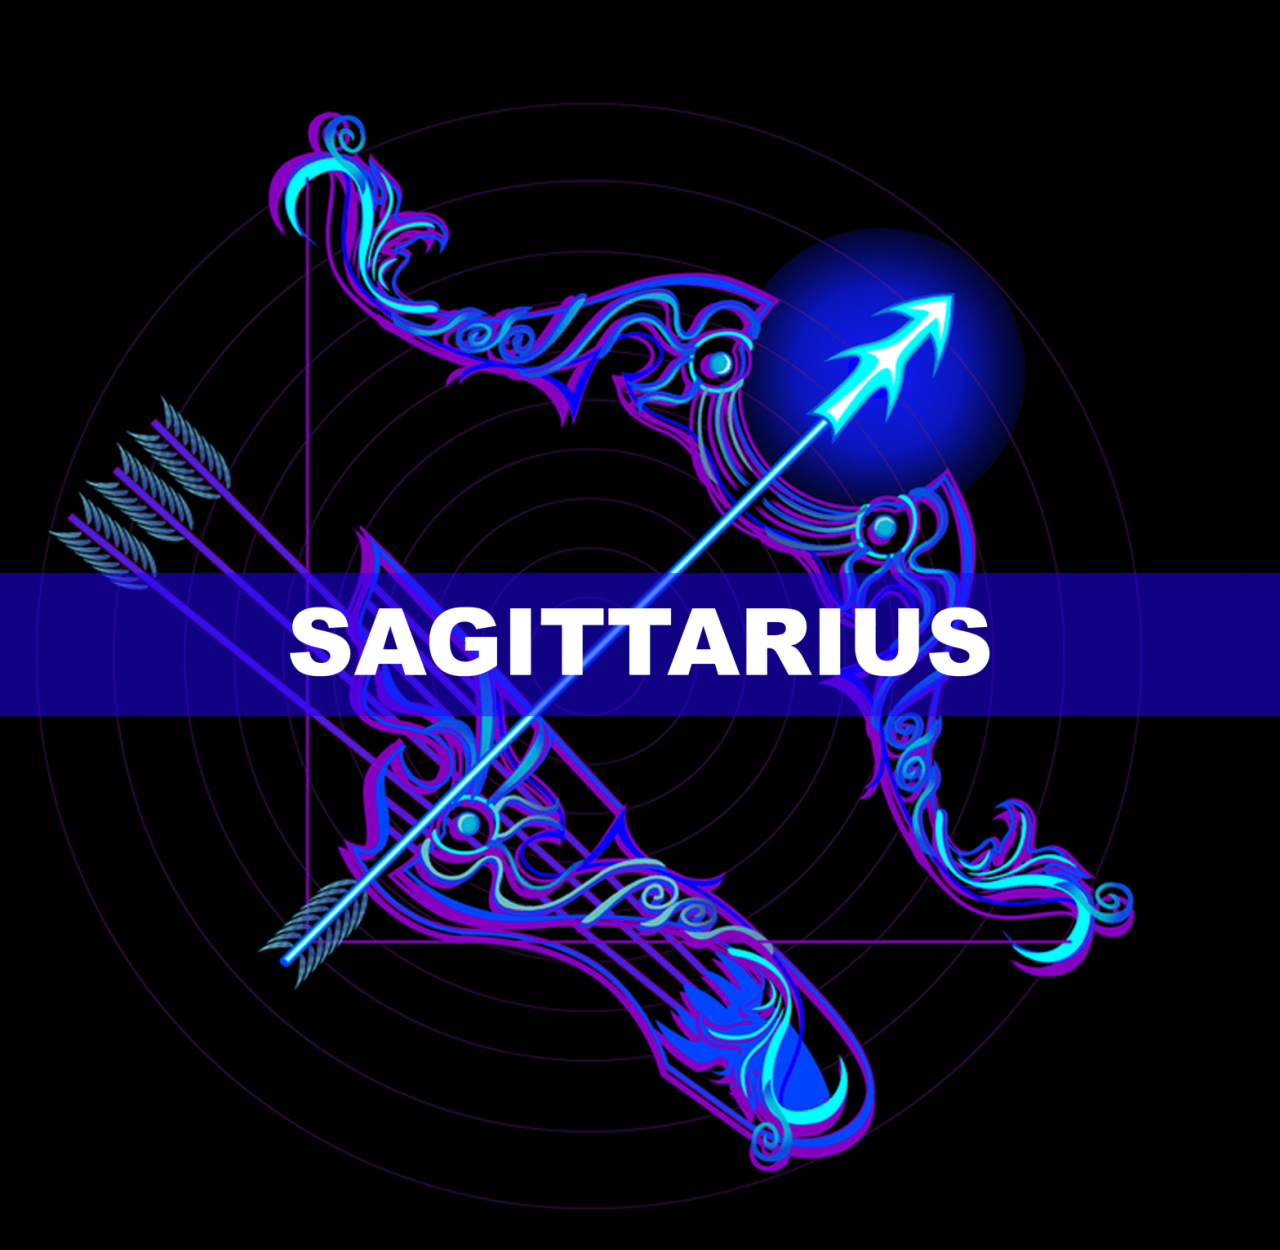 https://www.fortune-teller.in/wp-content/uploads/2020/09/sagittarius-1280x1250.png